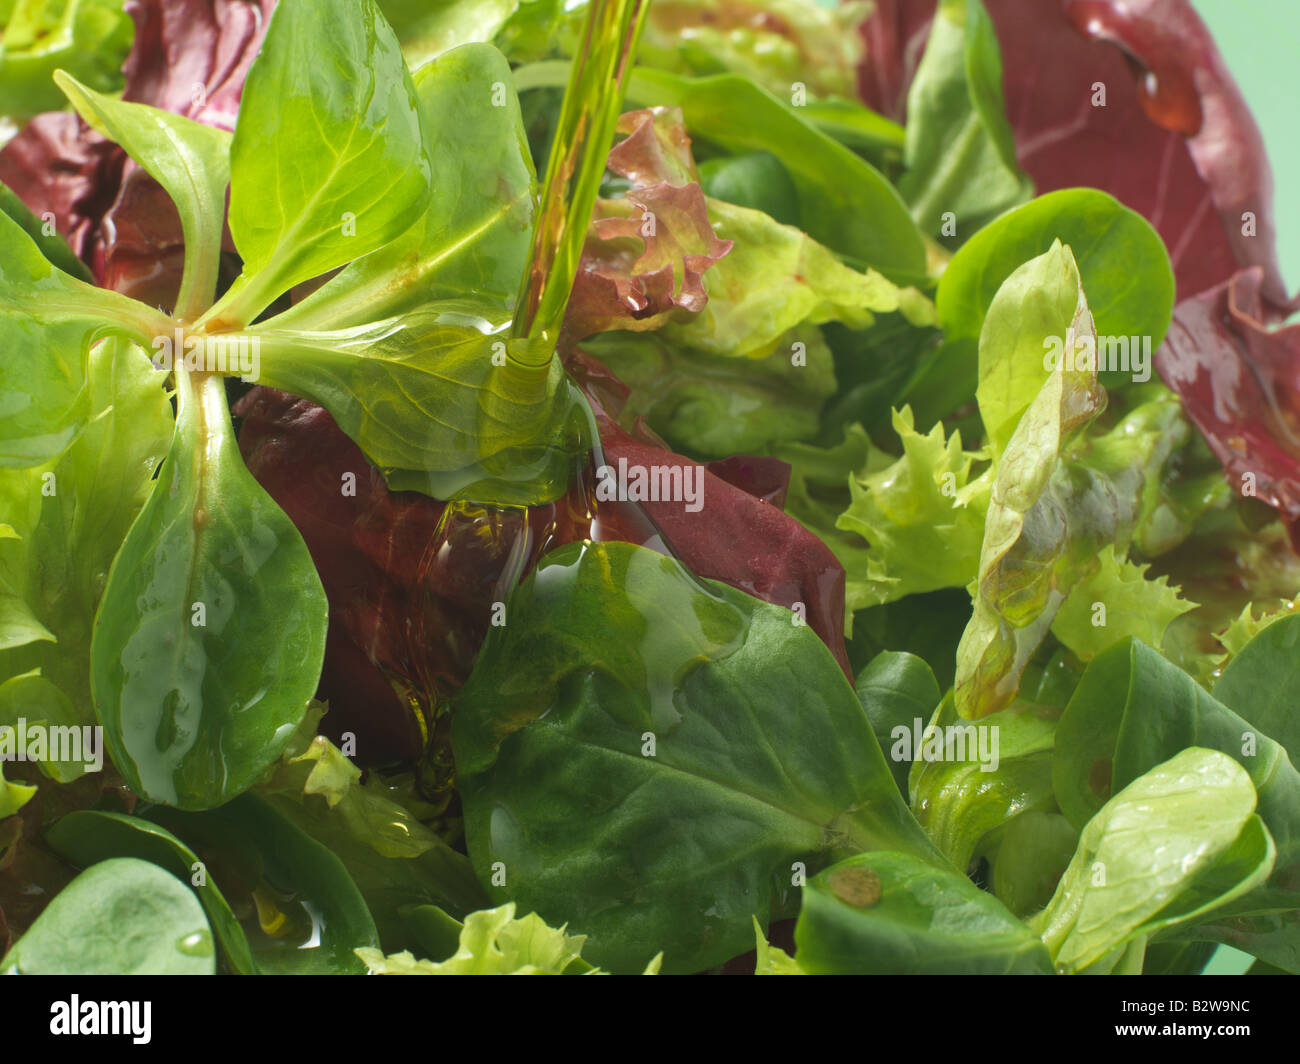 Olive oil being poured onto salad - Stock Image